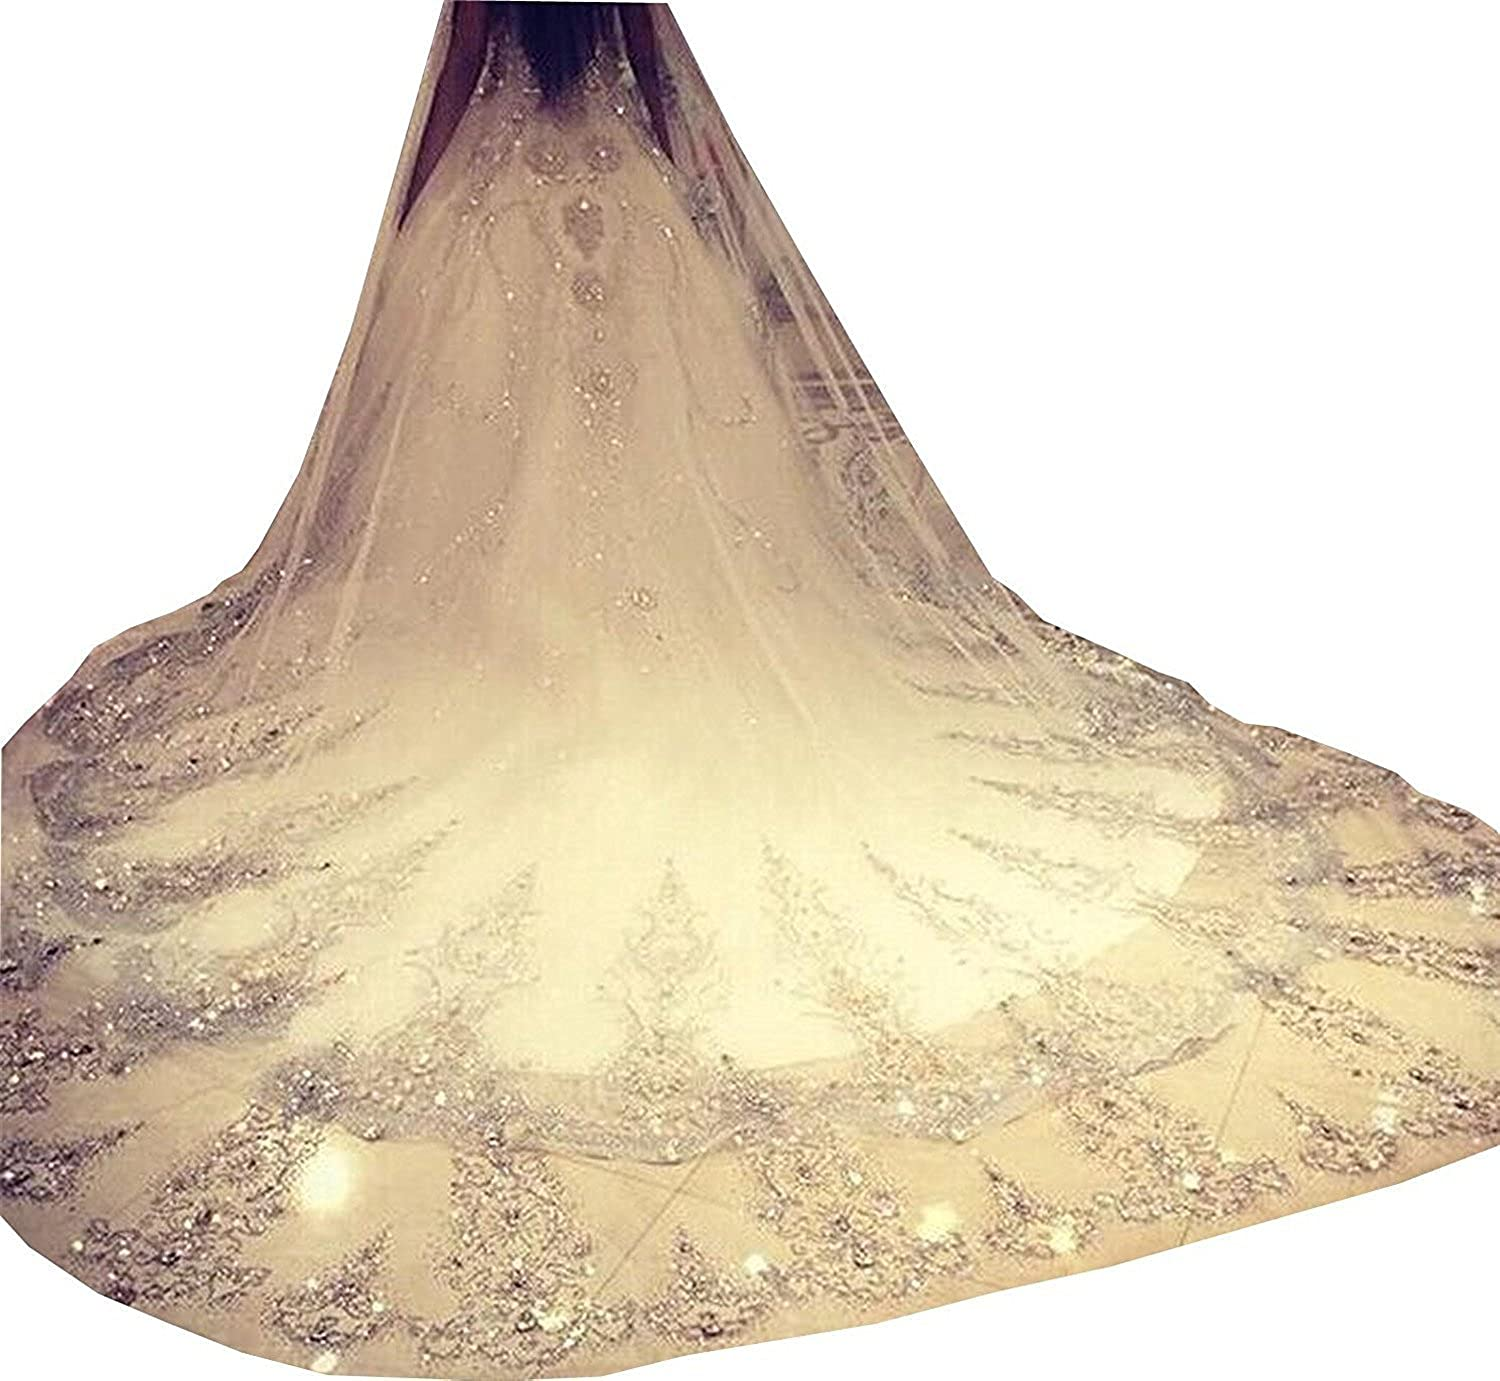 1T 1 Tier Beaded Lace Edge Bridal Wedding Veil with Crystals 3M